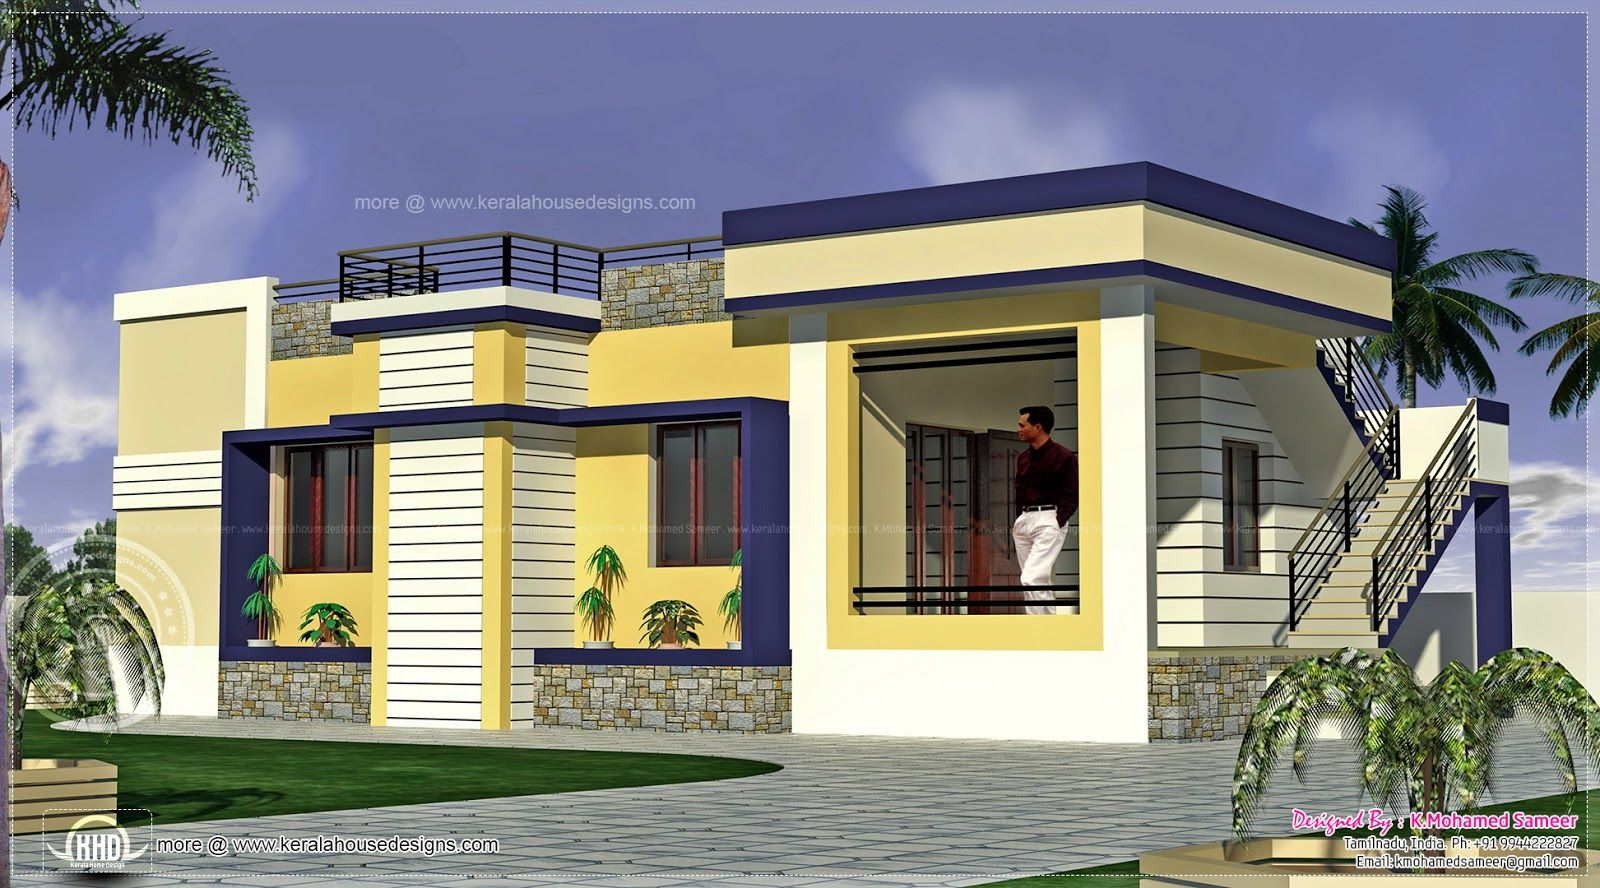 Tamil nadu house plans 1000 sq ft l Small home models pictures